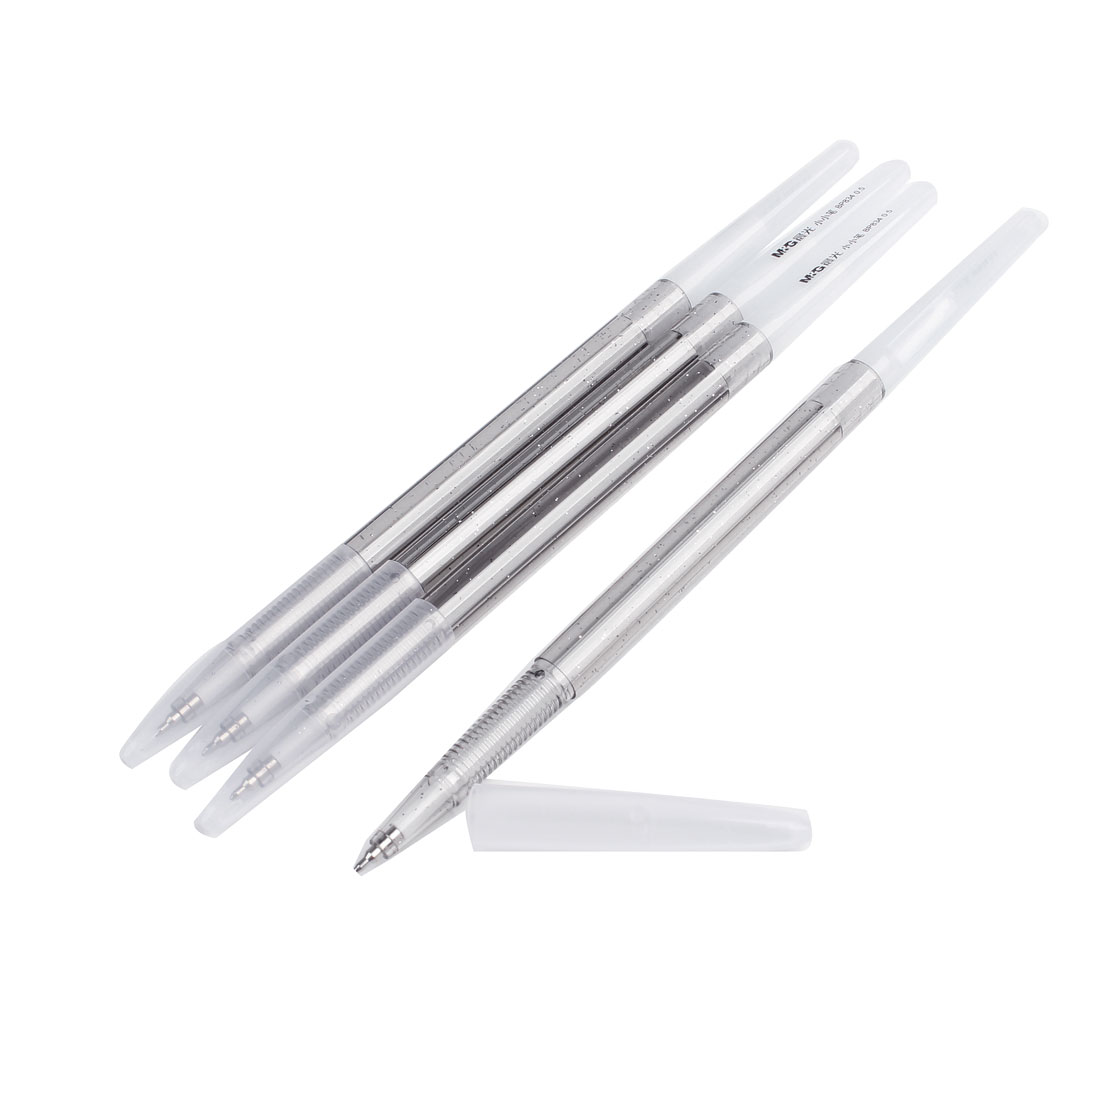 Clear Black Plastic Slim Body 0.5mm Blue Ball Point Pen Ballpen 4 Pcs